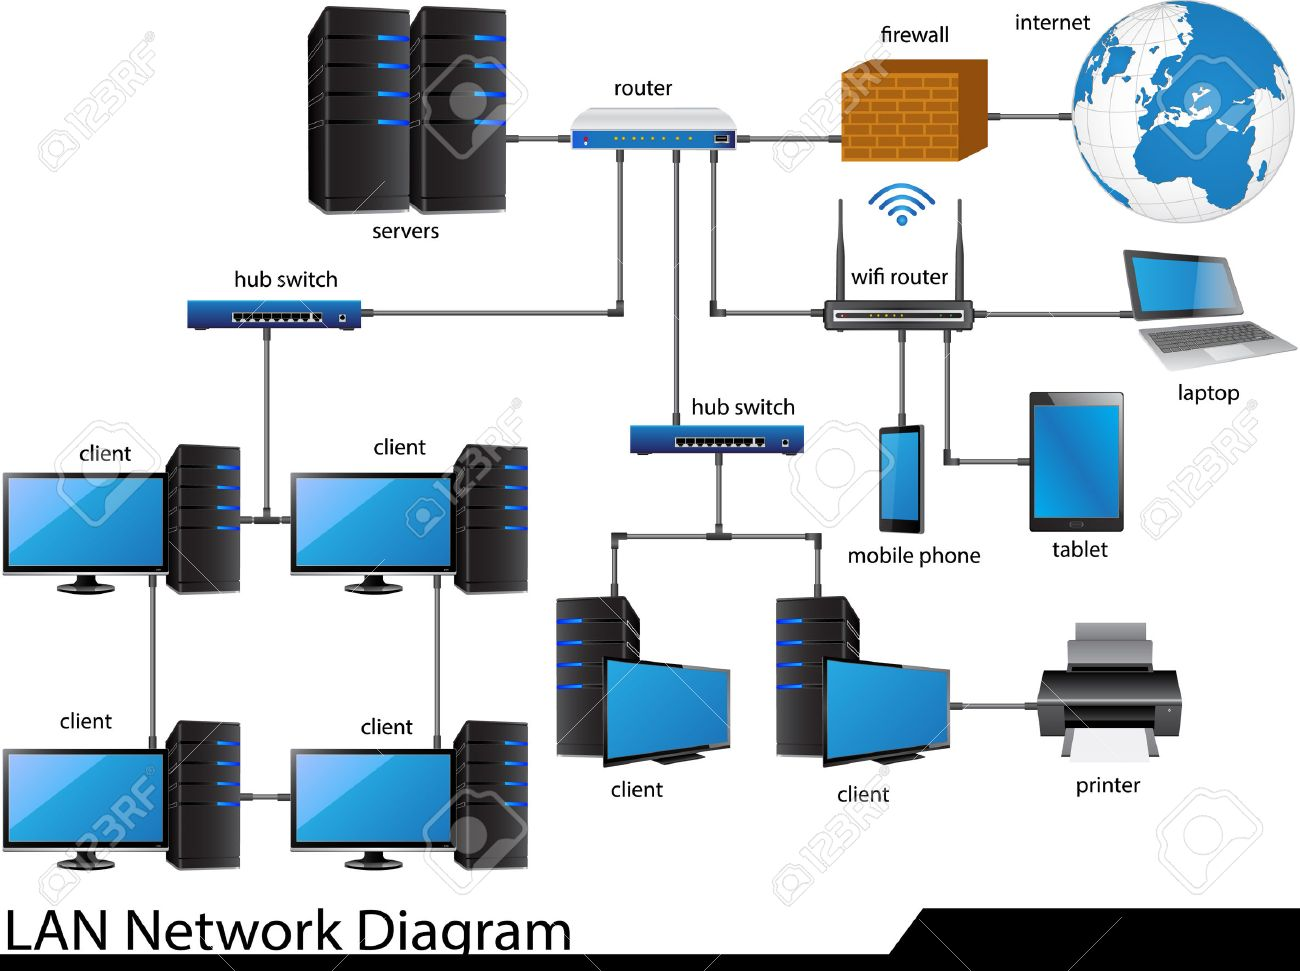 lan network diagram illustrator for business and technology concept stock vector 23981095